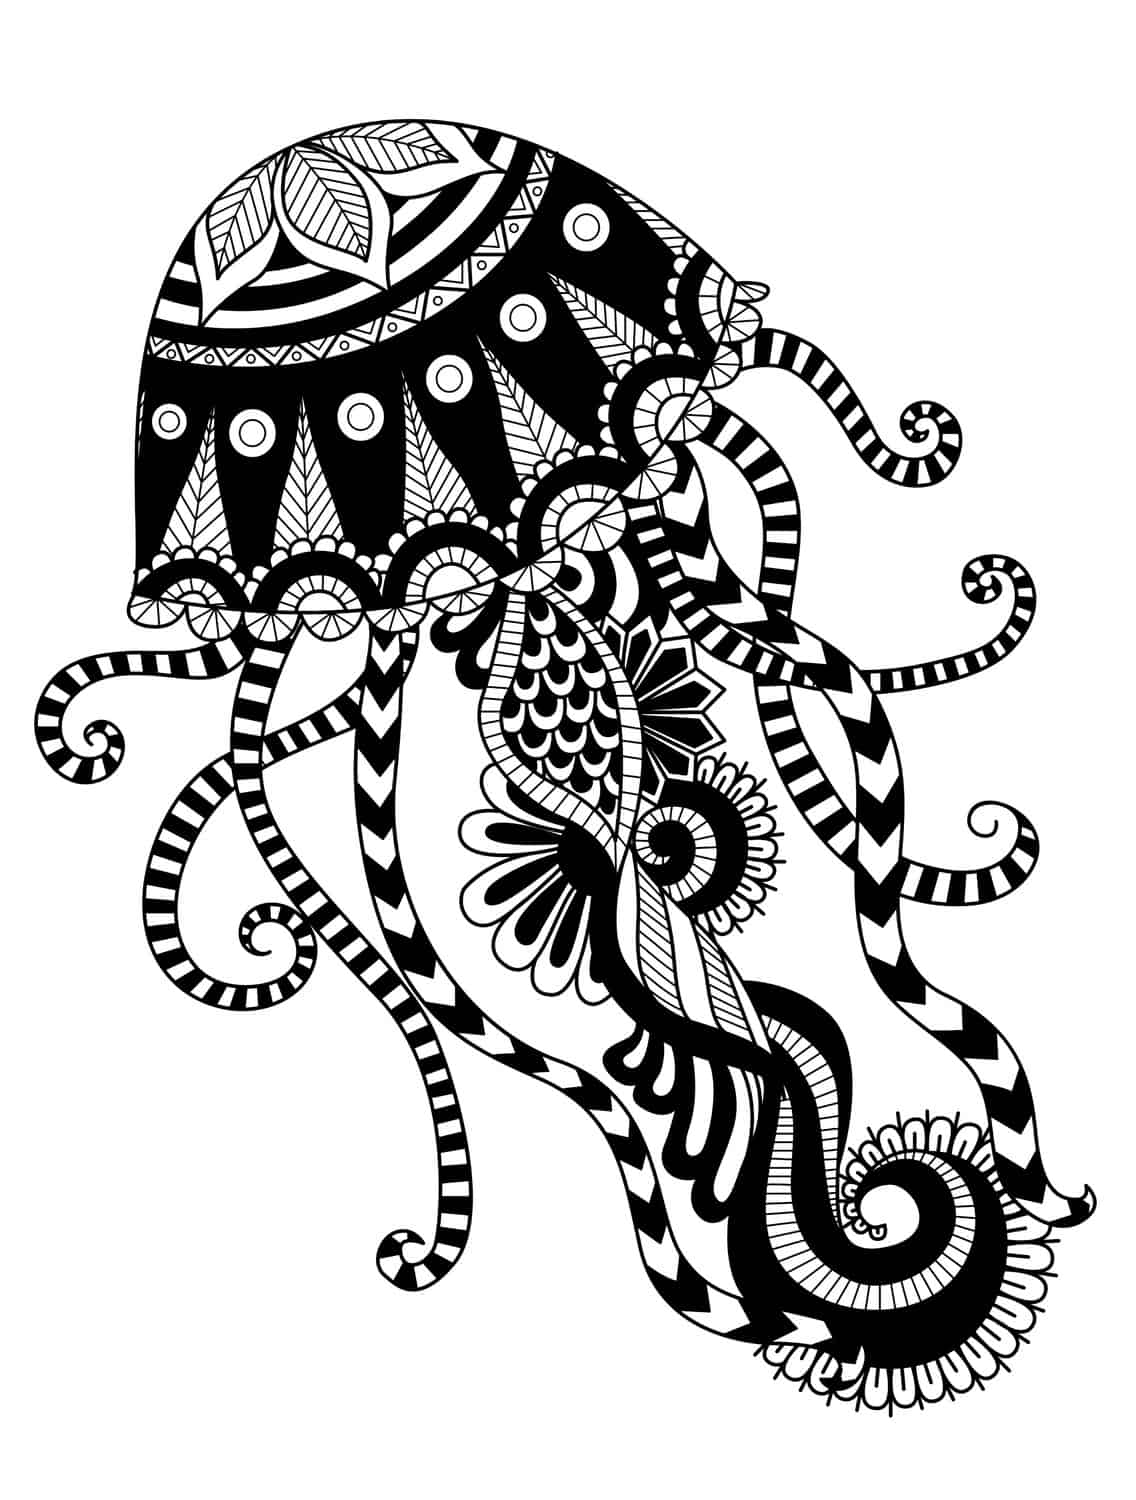 Free printable coloring pages for adults only adult coloring pages 24 - Free Printable Coloring Pages For Adults Only Adult Coloring Pages 7 Feed Jellyfish Coloring Pages Download